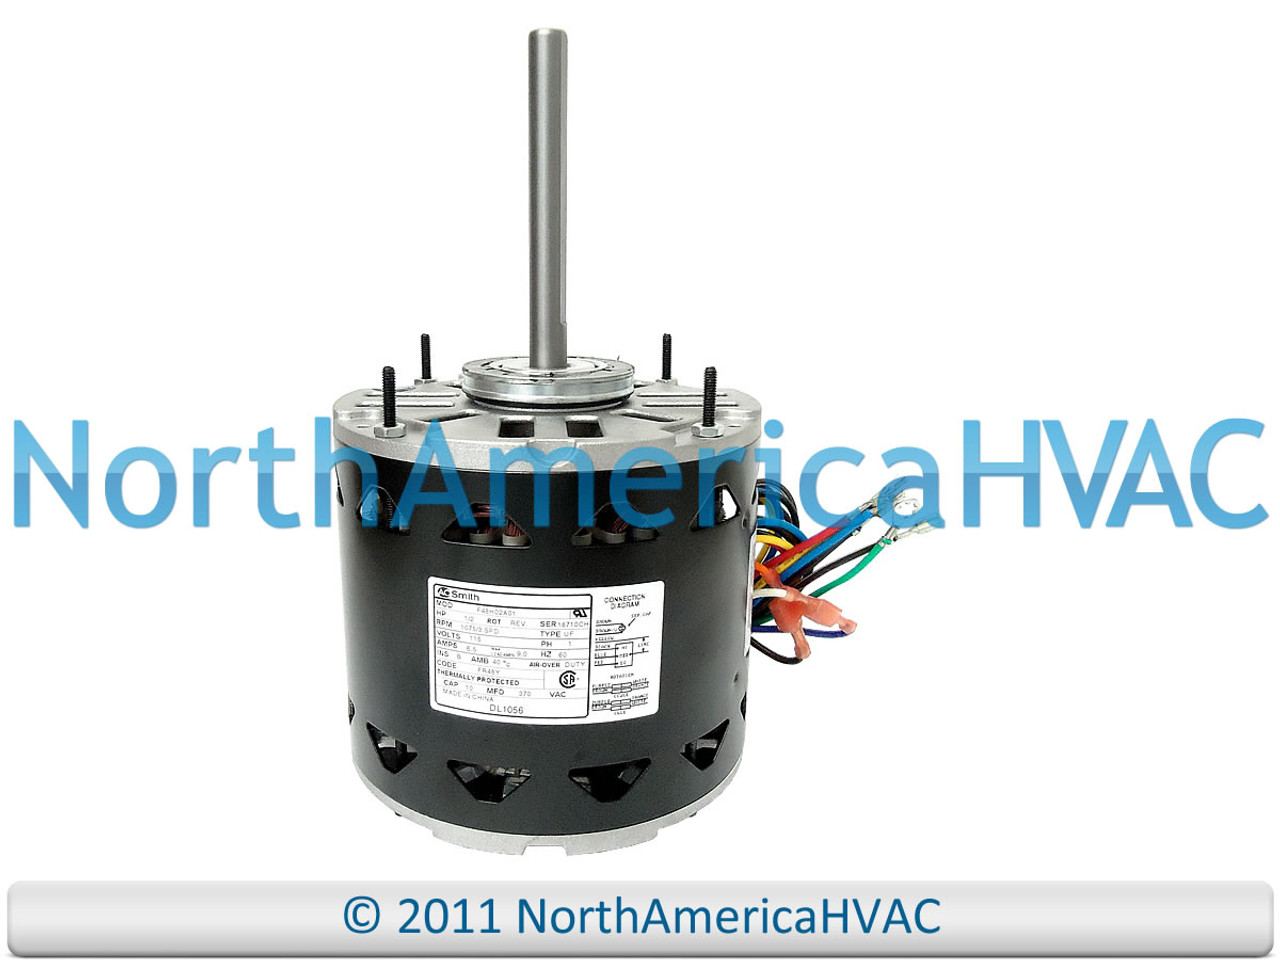 M0023925 OEM Upgraded Replacement for Nordyne Furnace Blower Motor